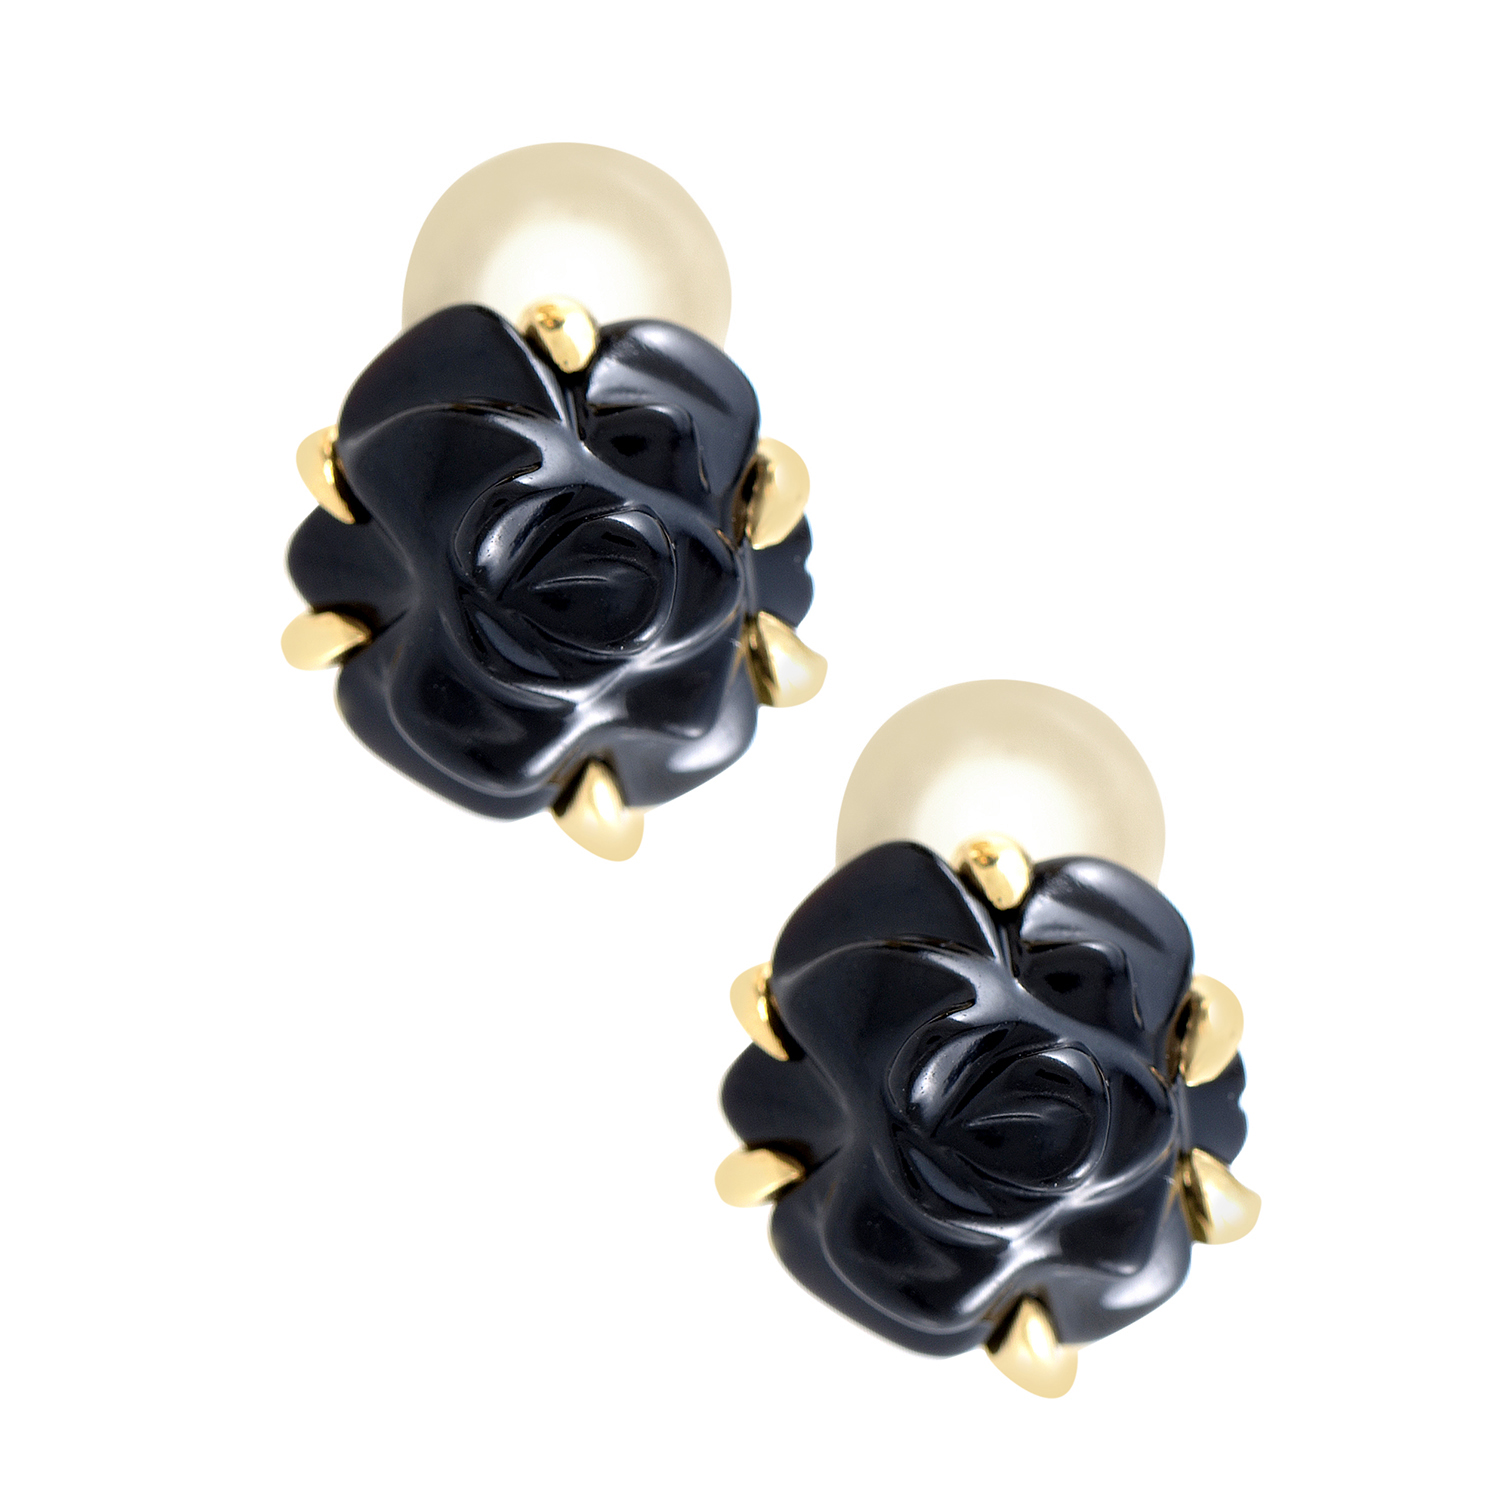 Chanel Camellia 18K Yellow Gold Black Agate Clip-on Earrings AK1B2888